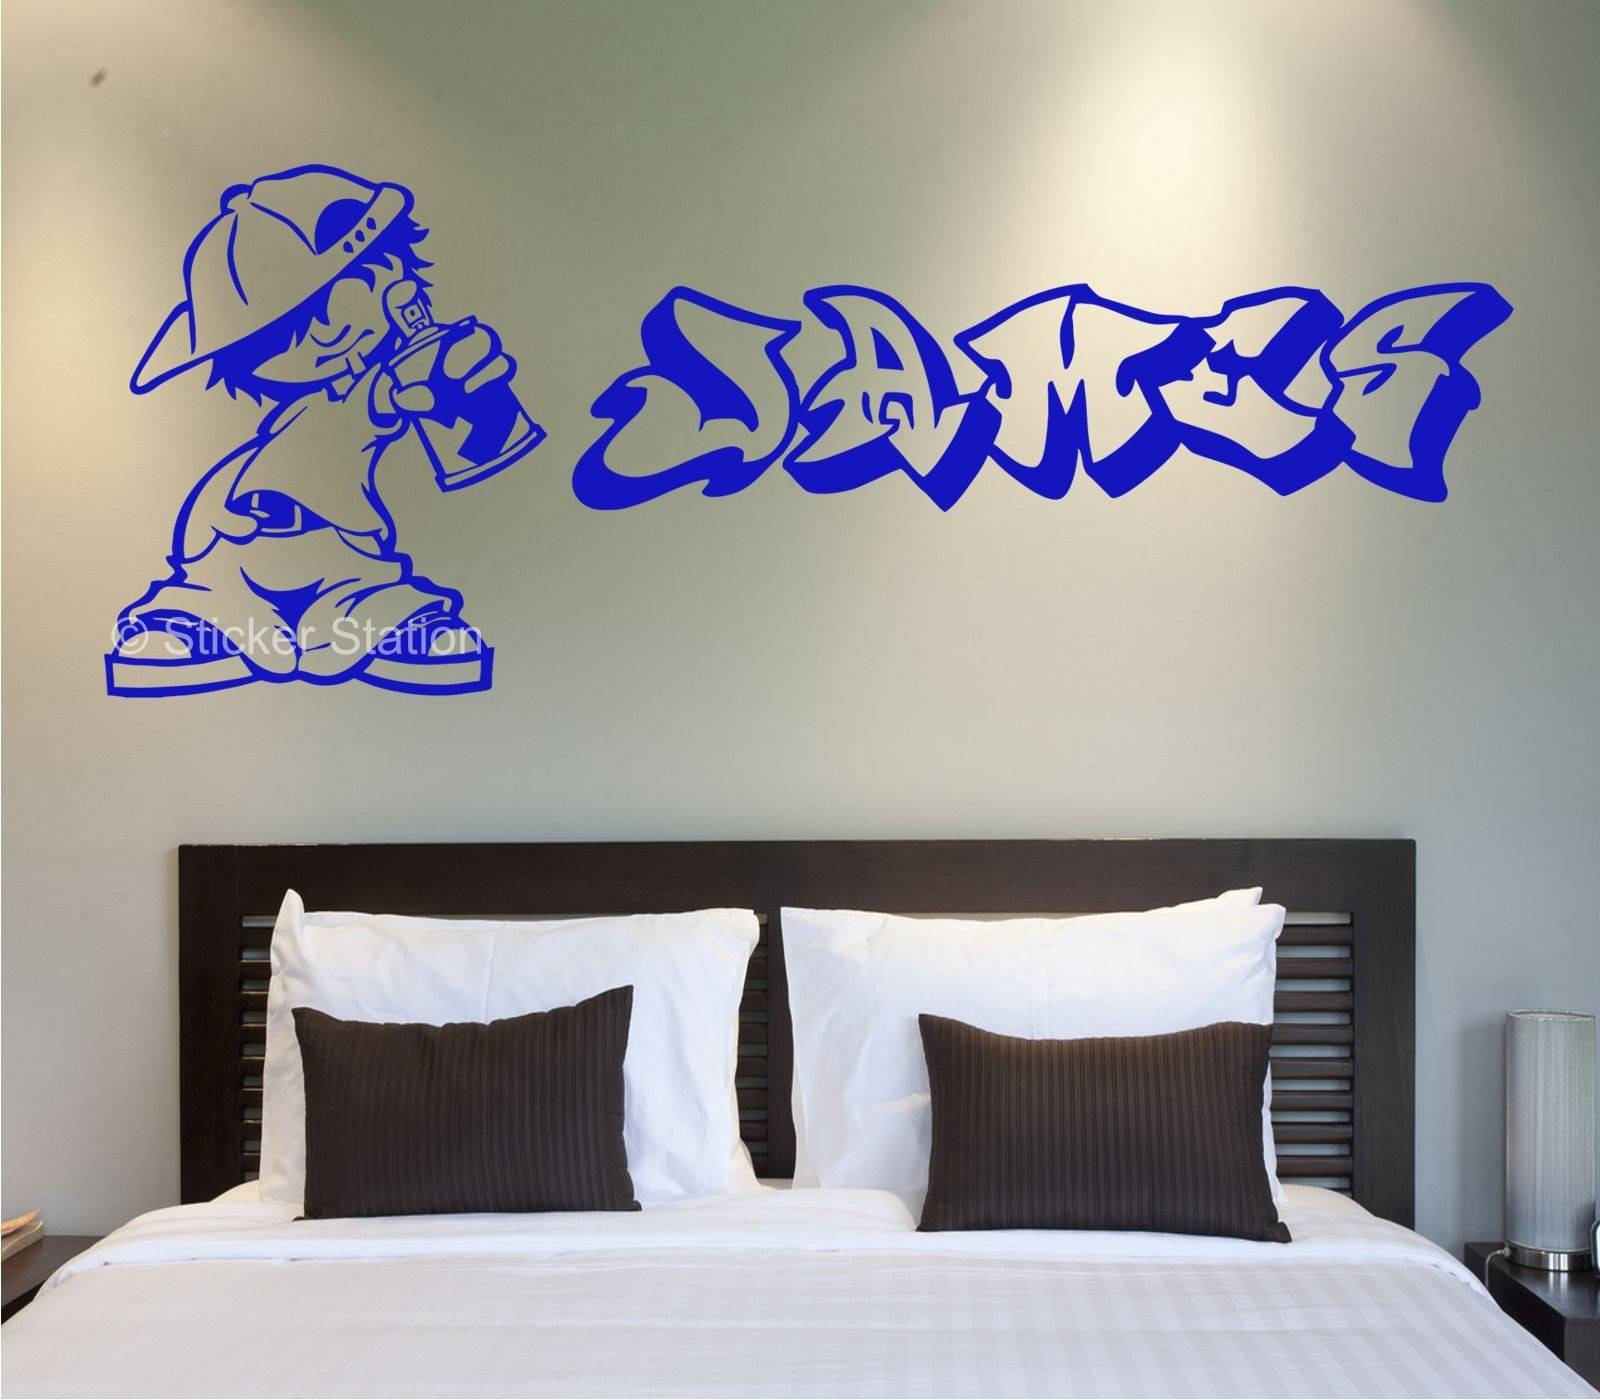 Graffiti Artist Personalised Wall Art Sticker – Sticker Station Throughout Most Popular Personalized Graffiti Wall Art (View 8 of 30)